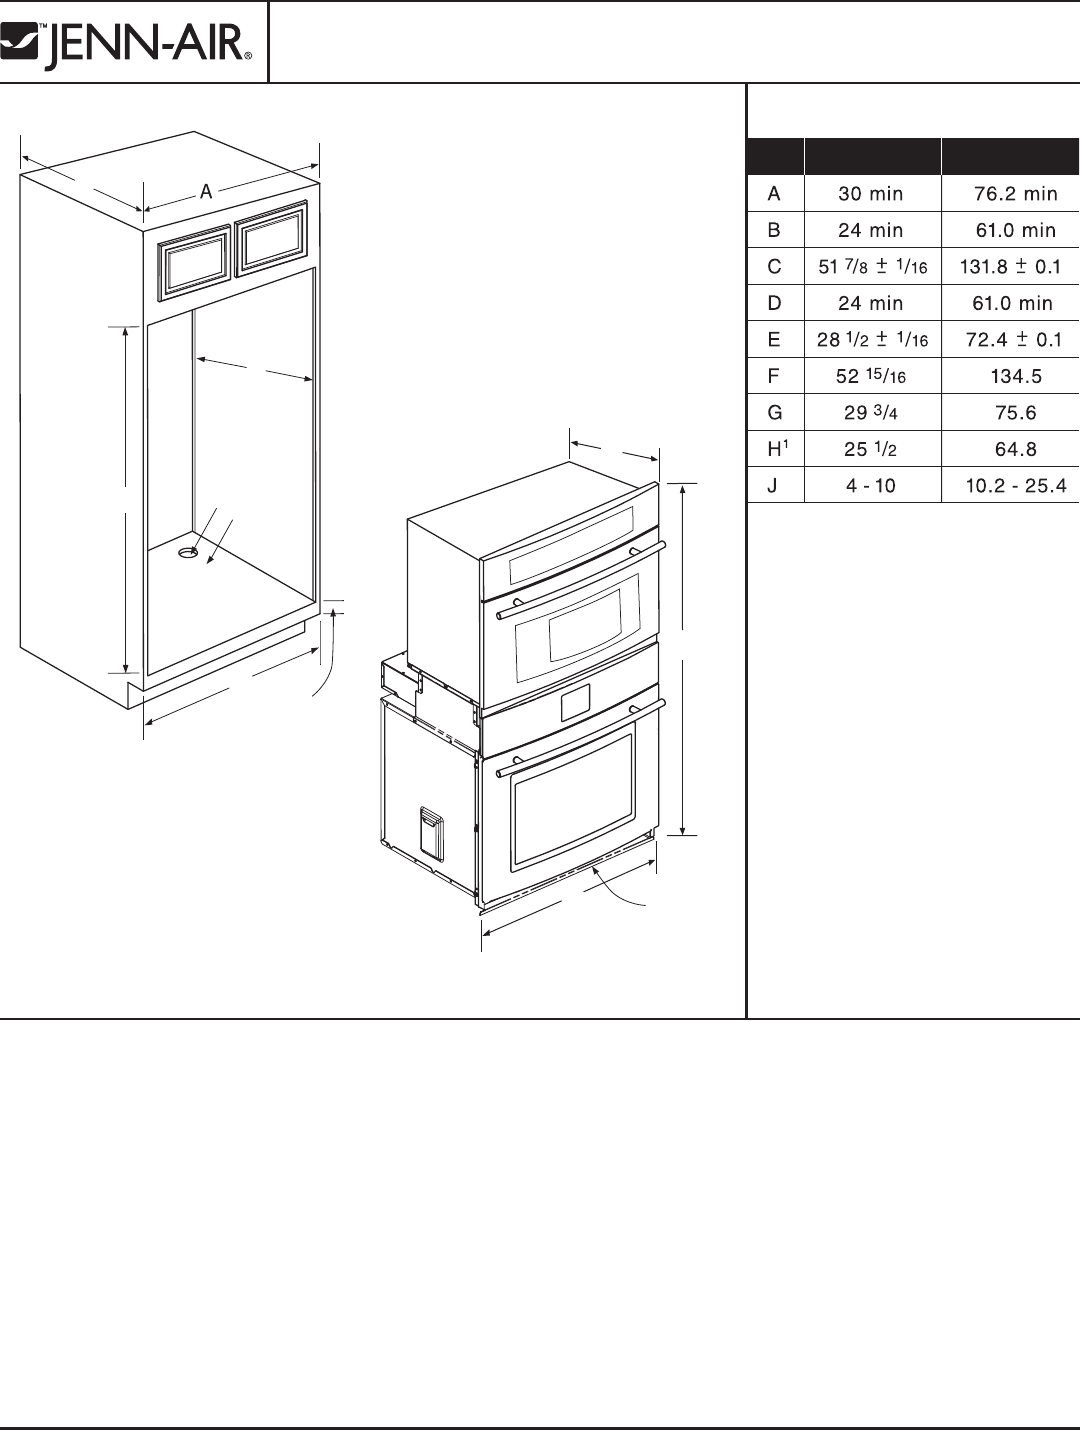 jenn air s136 wiring diagram jenn air s160 wiring diagram